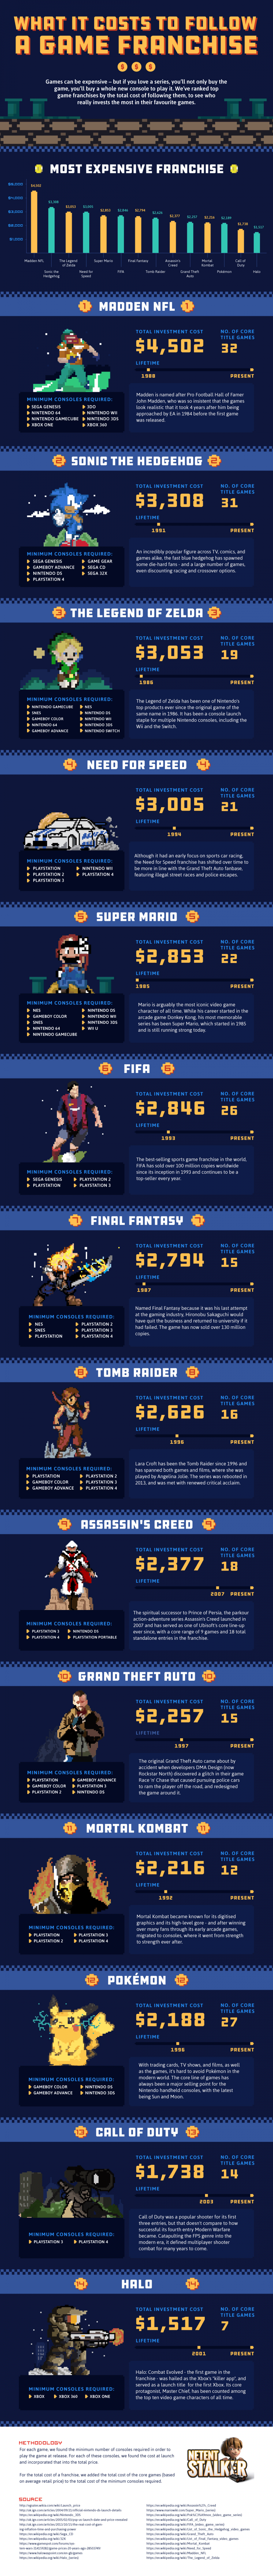 infographic - The Cost of Gaming: How Much Does It Cost to Make a Game